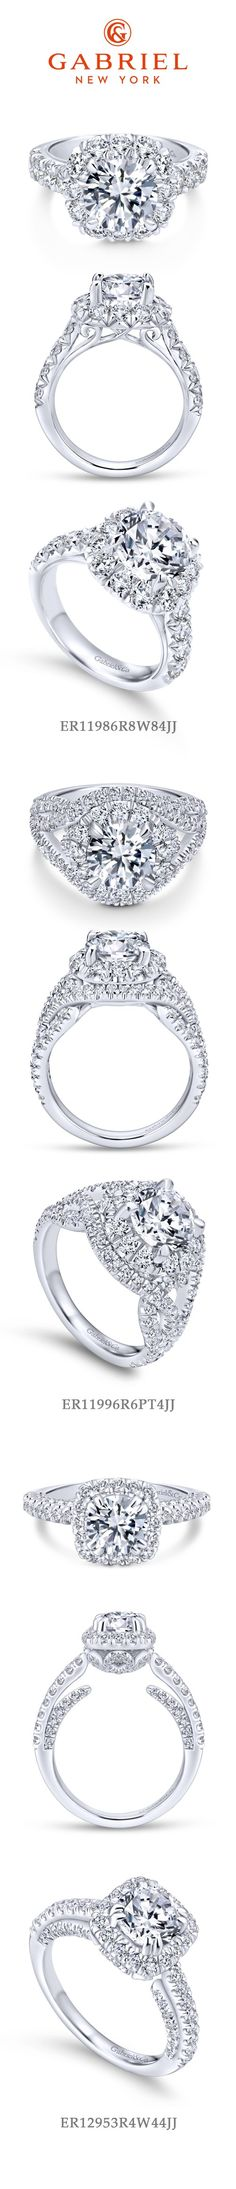 Gabriel - Our Top 3 Halo Engagement Rings! 1) 18k White Gold Round Halo Engagement Ring 2) 18k White Gold Round Halo 3) 14k White Gold Round Halo Infinity